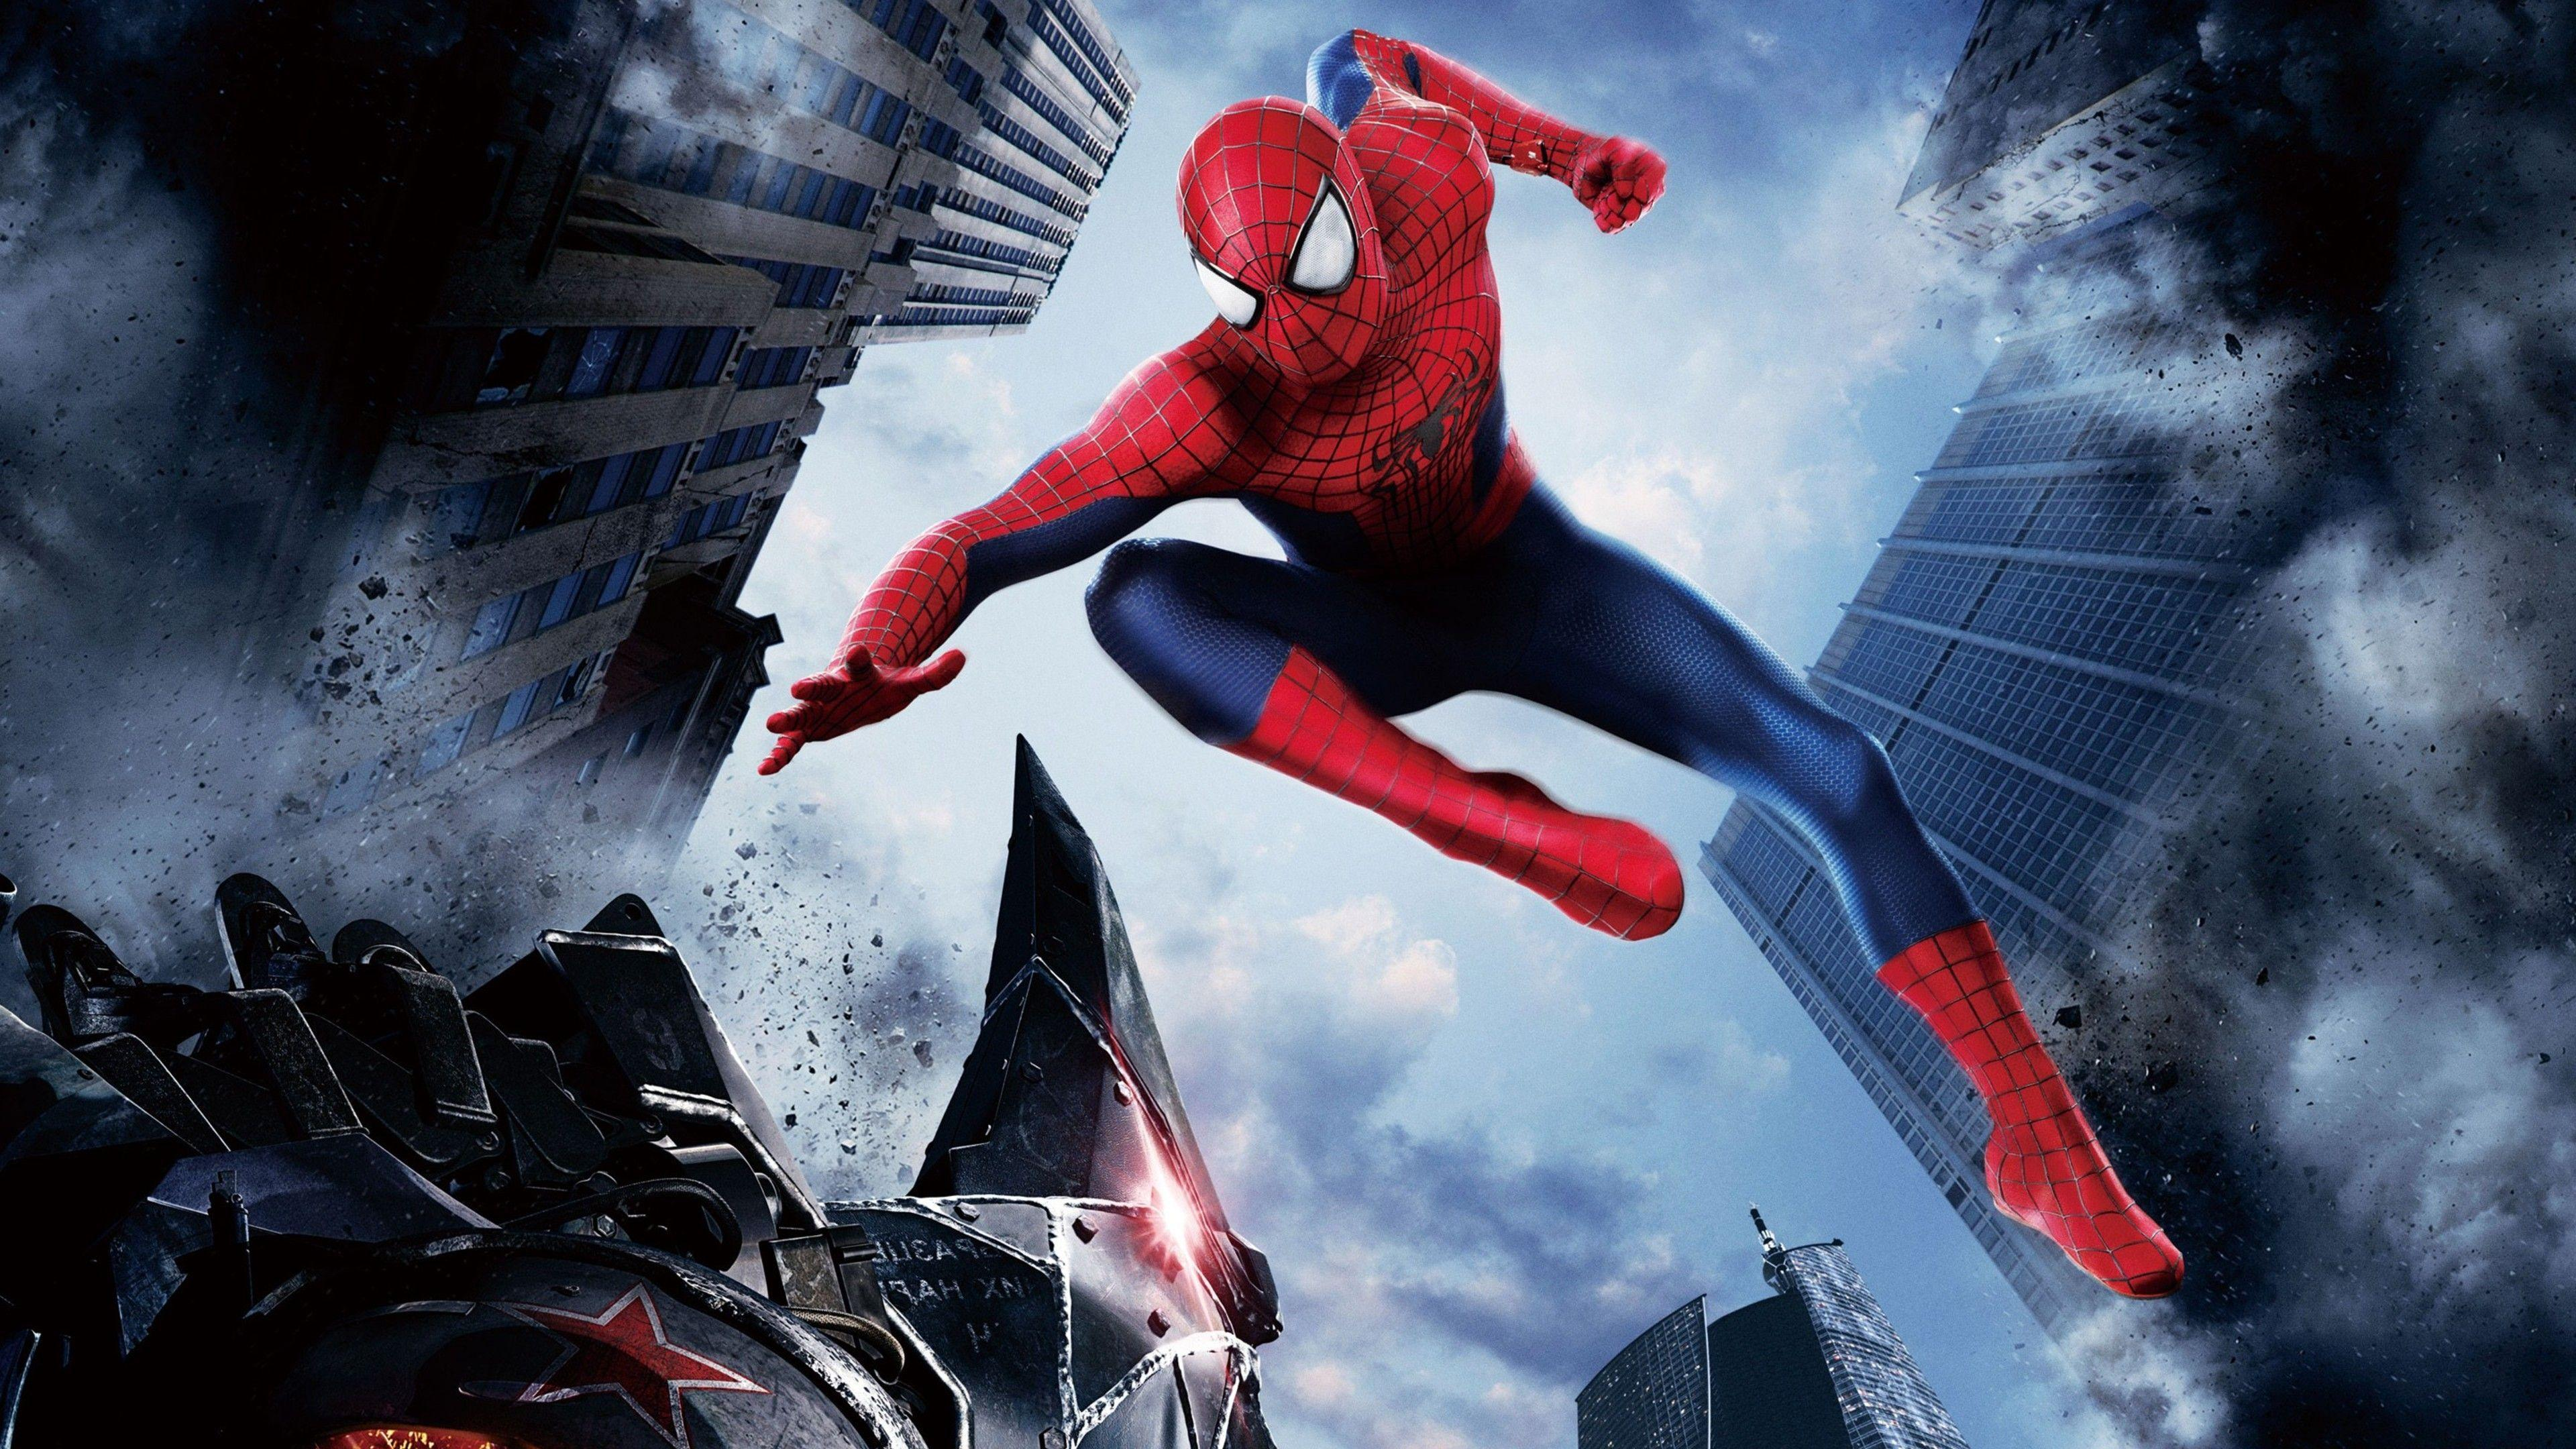 amazing spiderman hd wallpaper - photo #23